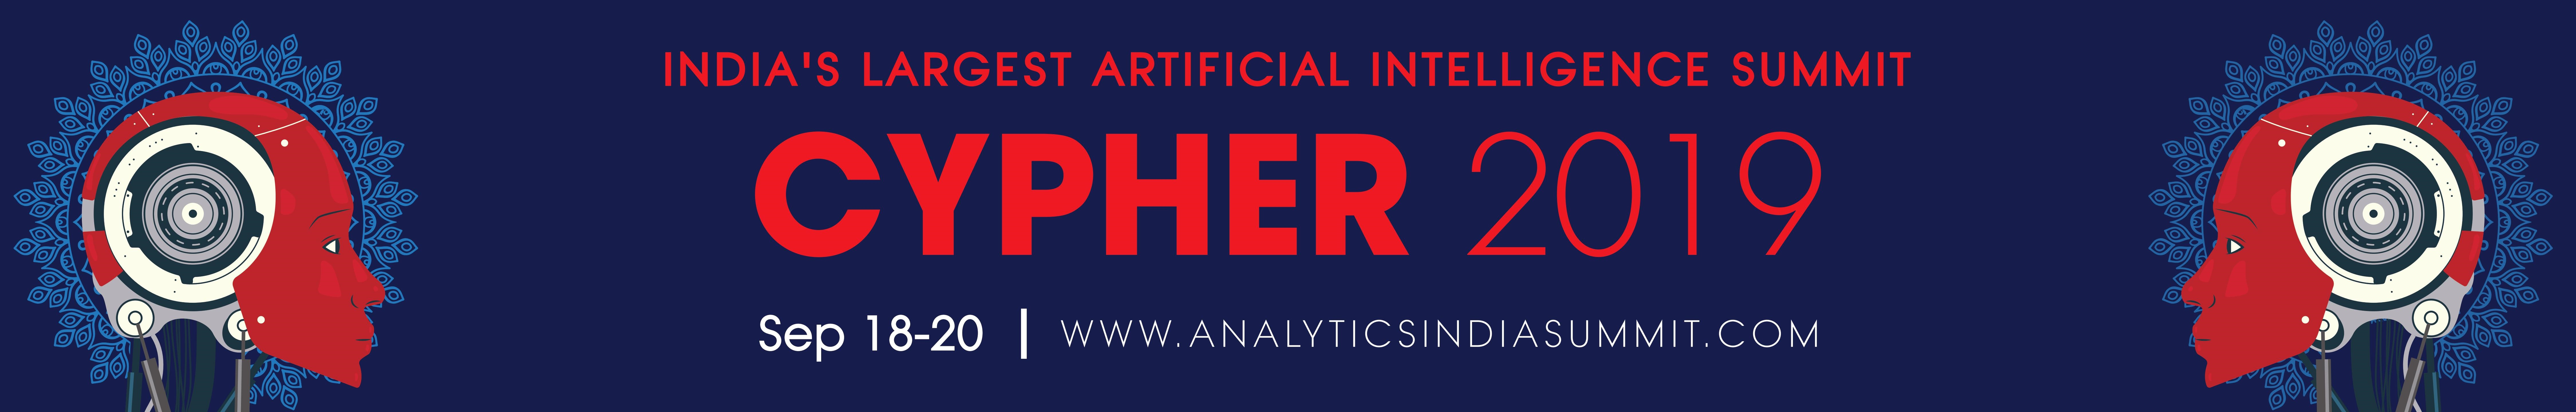 Bella | India's Largest Artificial Intelligence Summit Cypher 2019